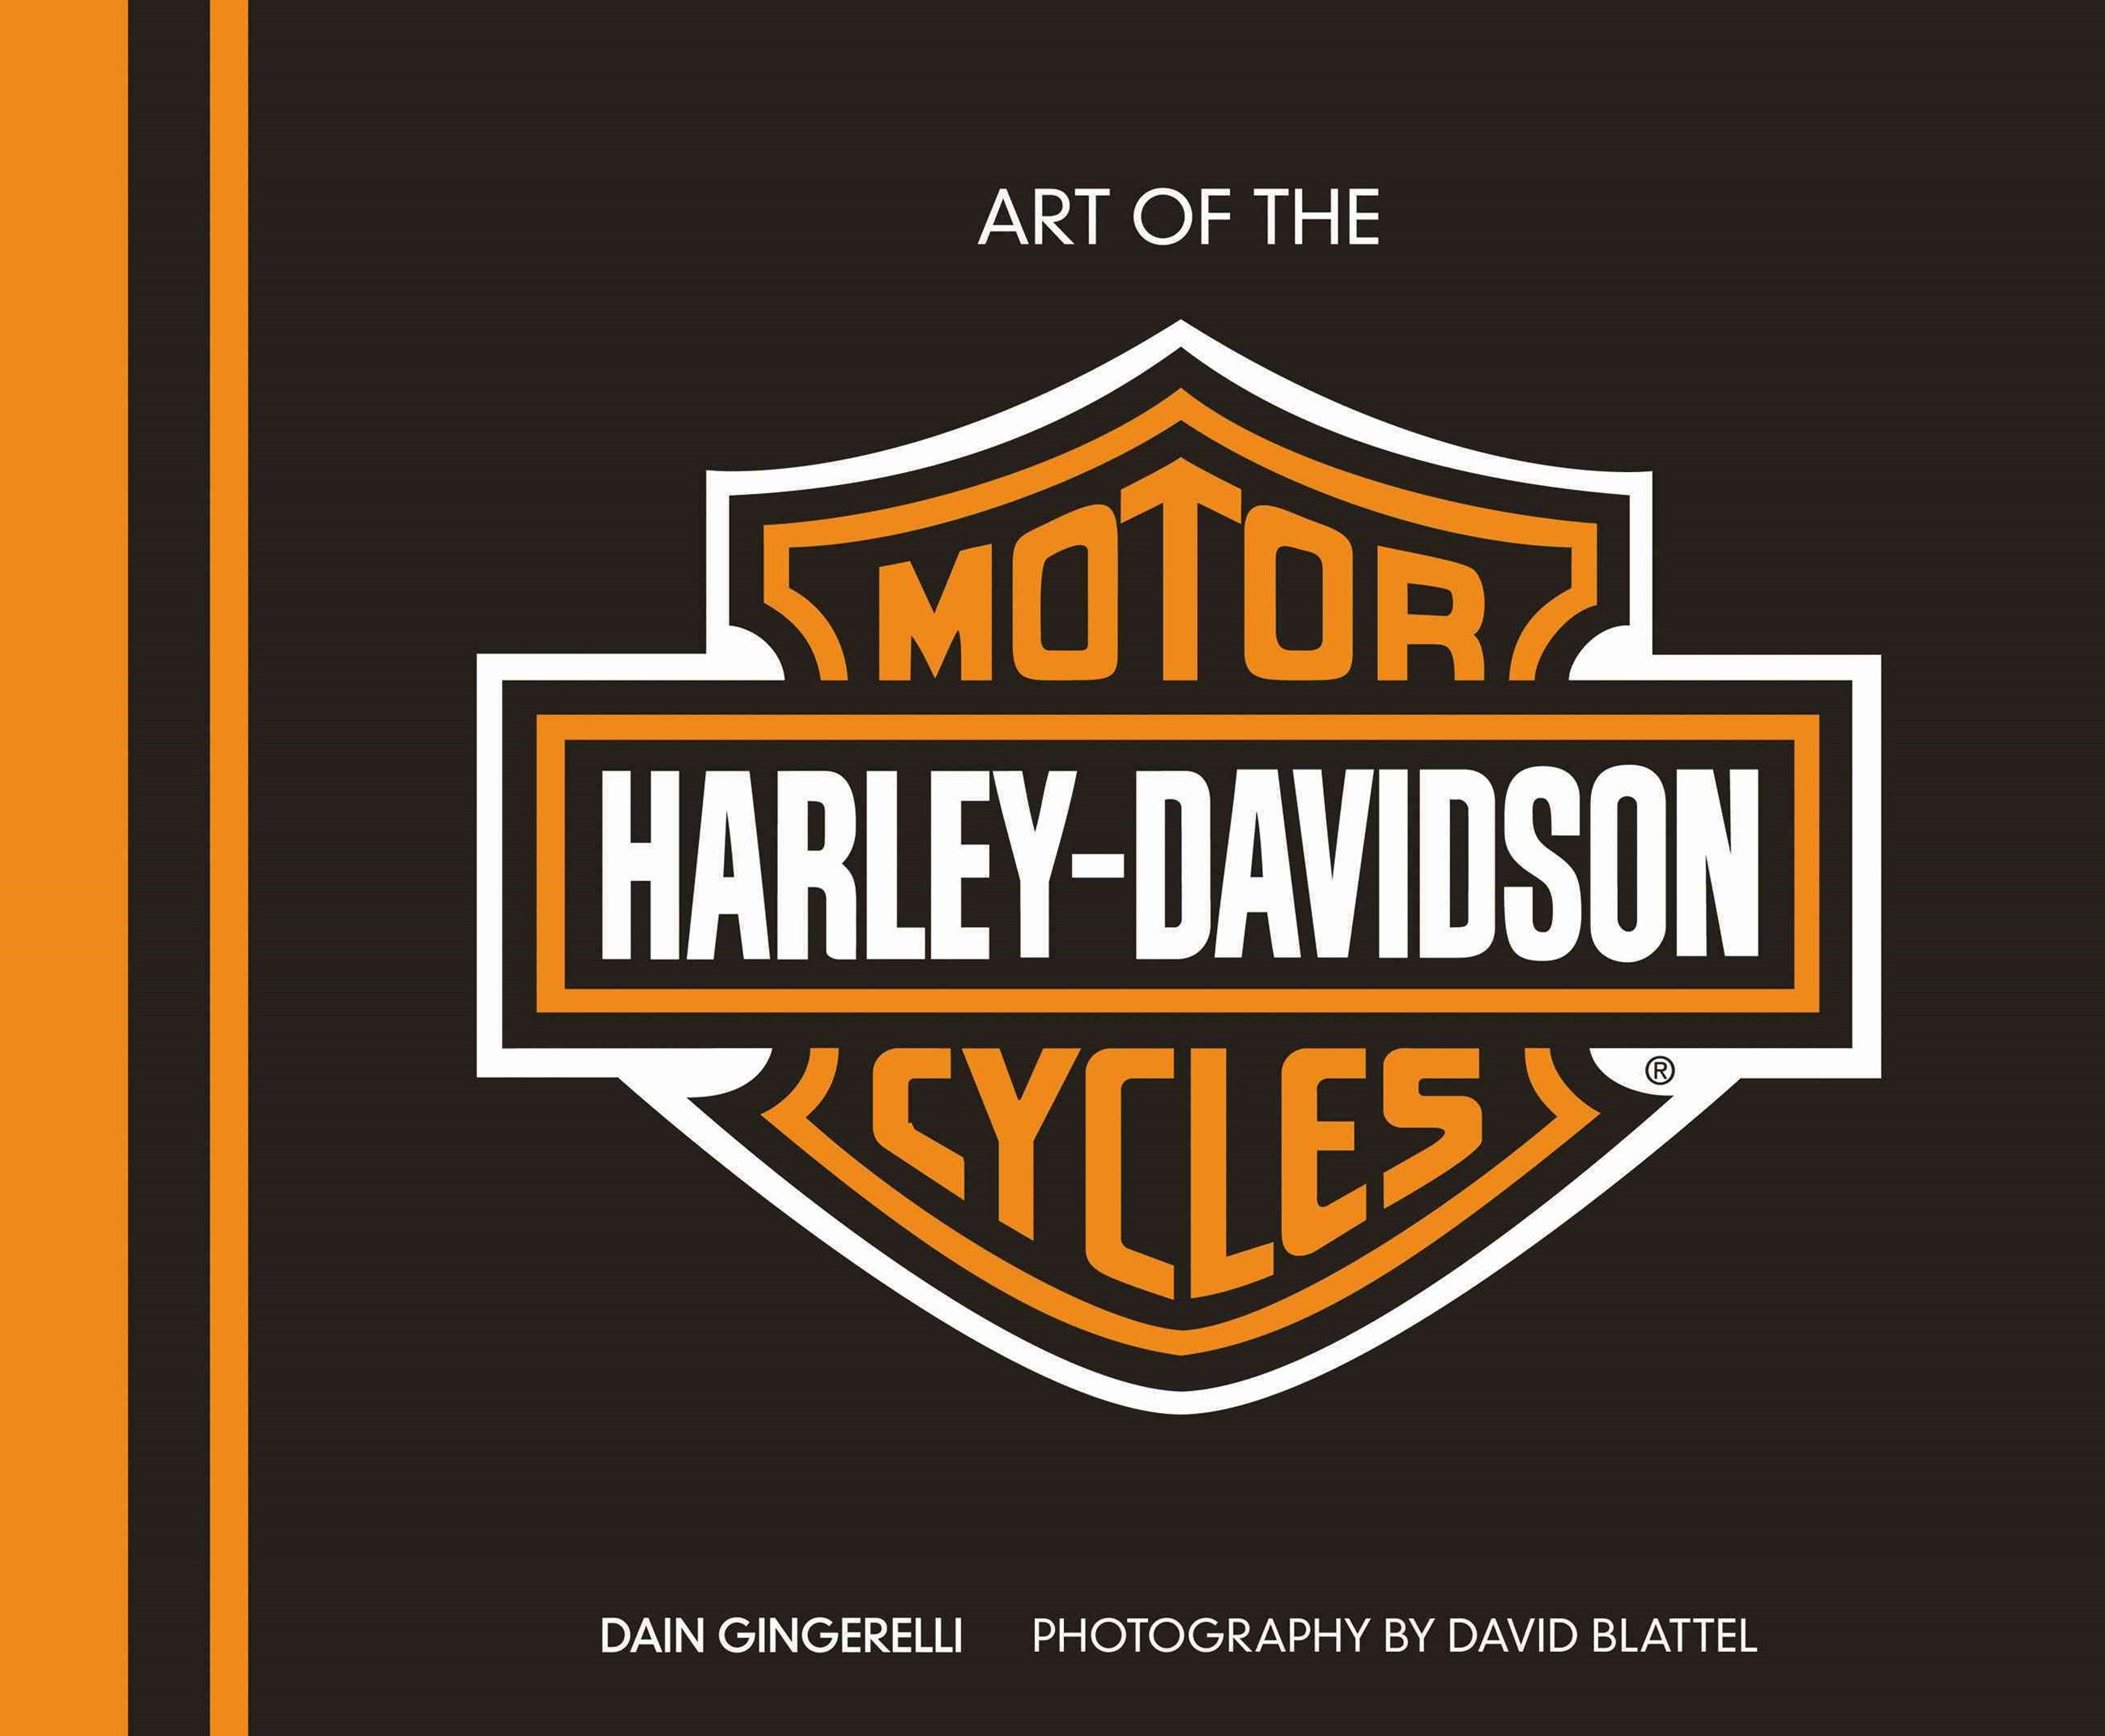 Art of the Harley-Davidson Motorcycle - Deluxe Edition